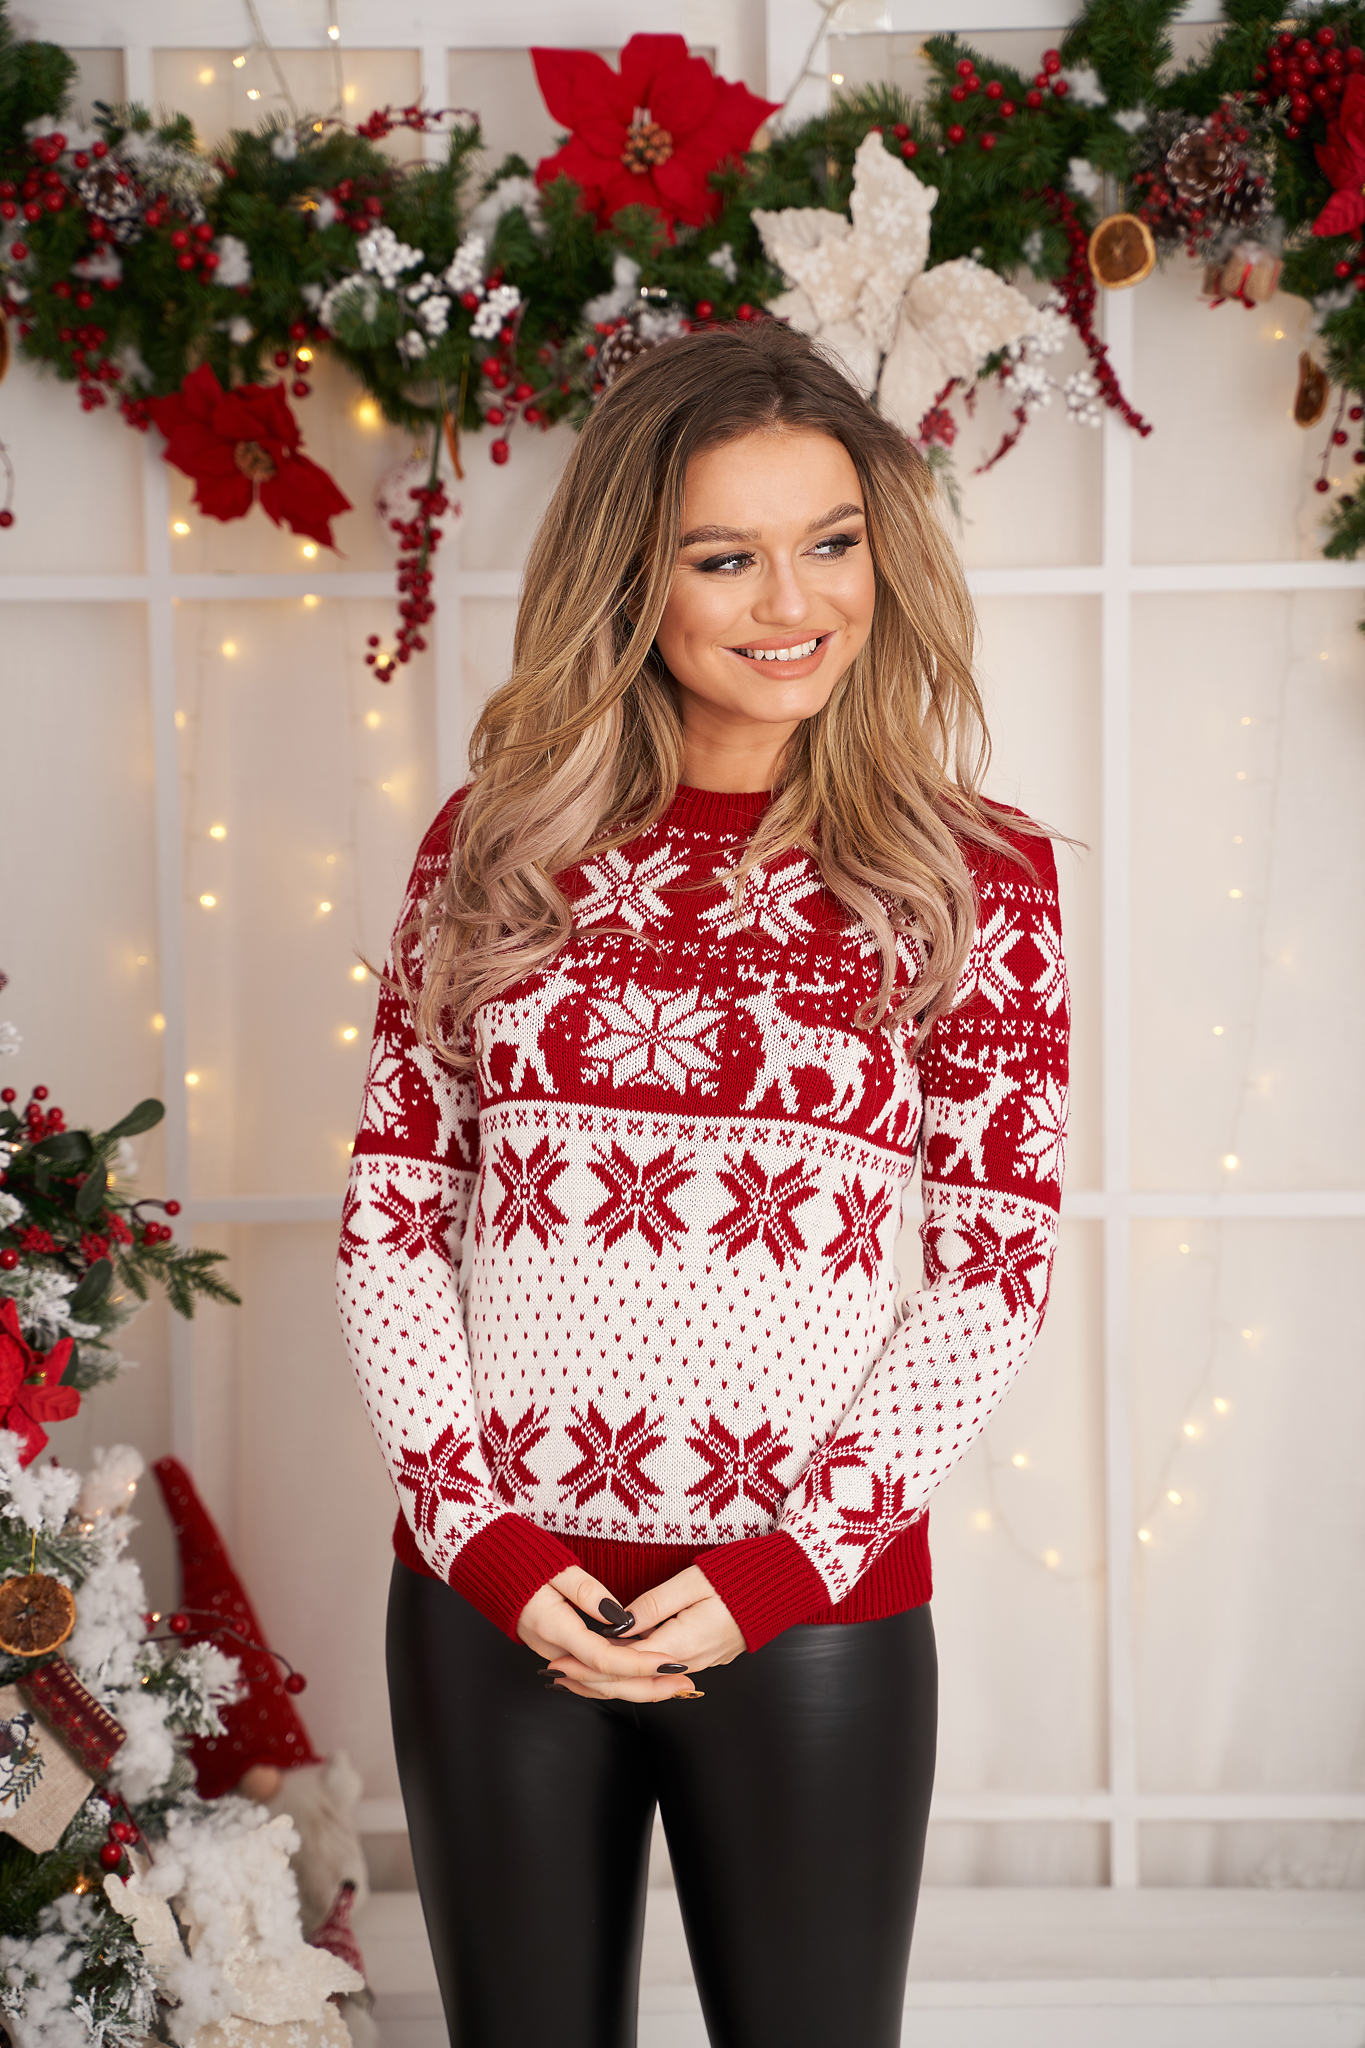 Casual red sweater with print details knitted fabric neckline